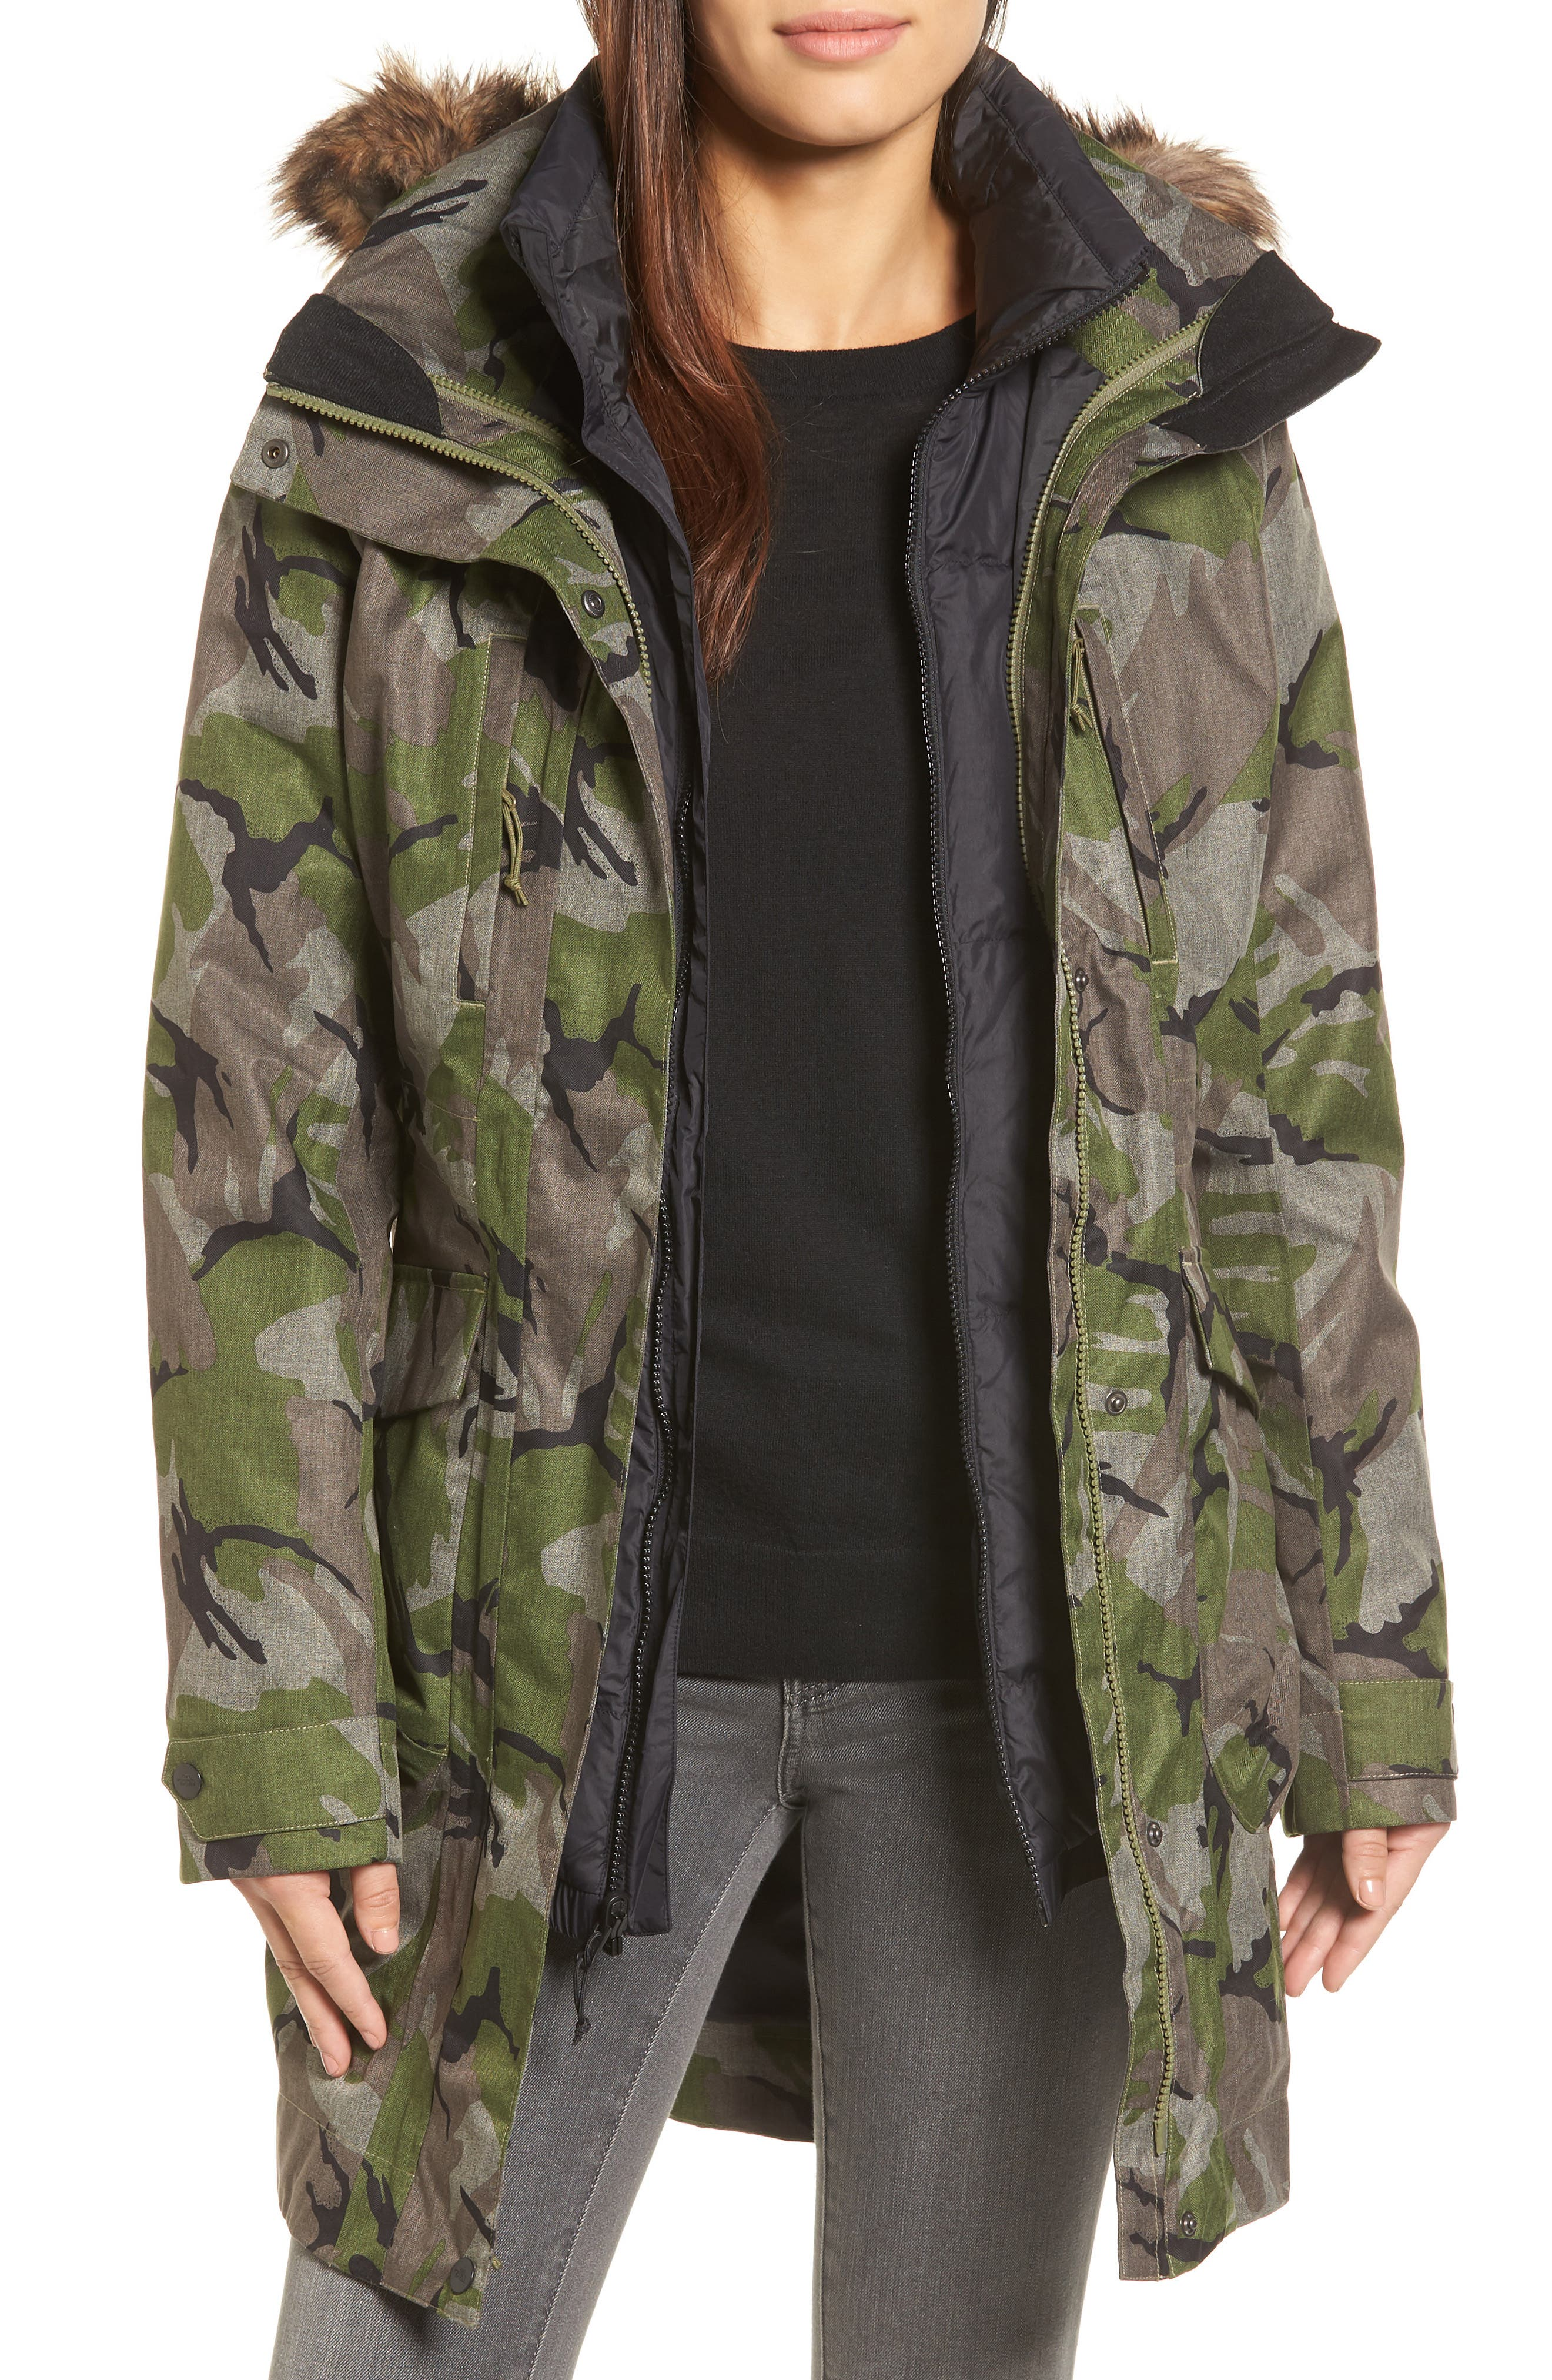 Outer Boroughs 3-in-1 TriClimate<sup>®</sup> Waterproof Jacket with Faux Fur Trim,                             Main thumbnail 1, color,                             301